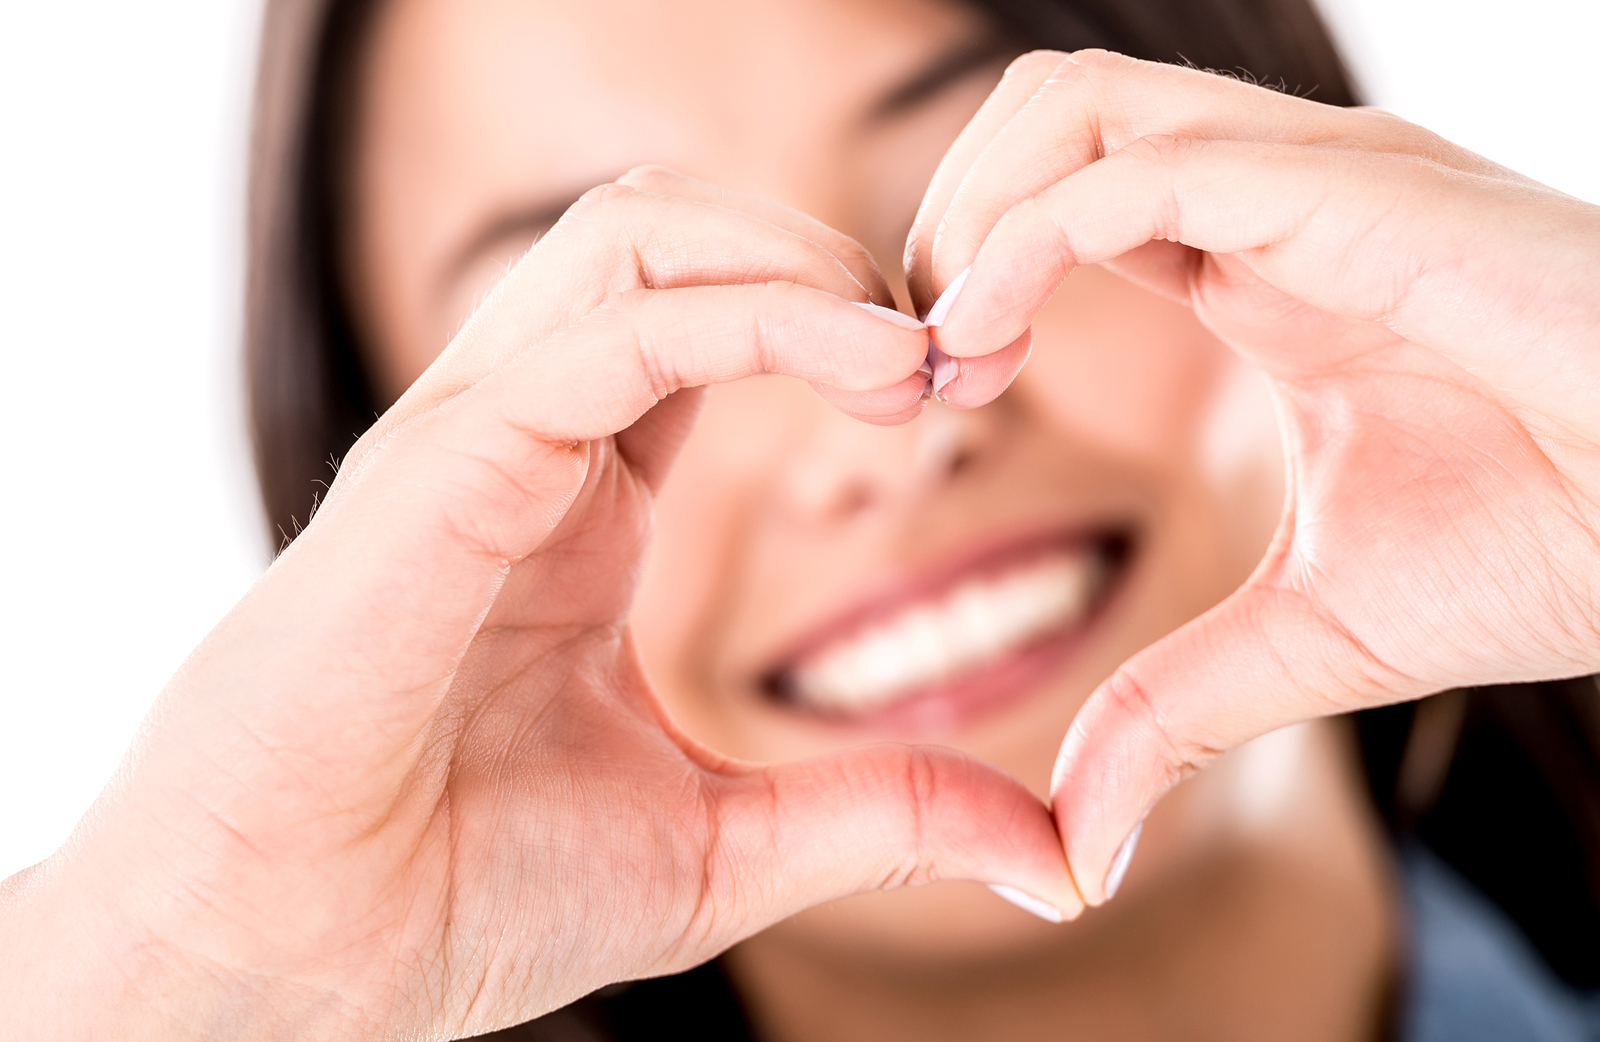 Self-Love: 8 Ways To Love Yourself This Valentine